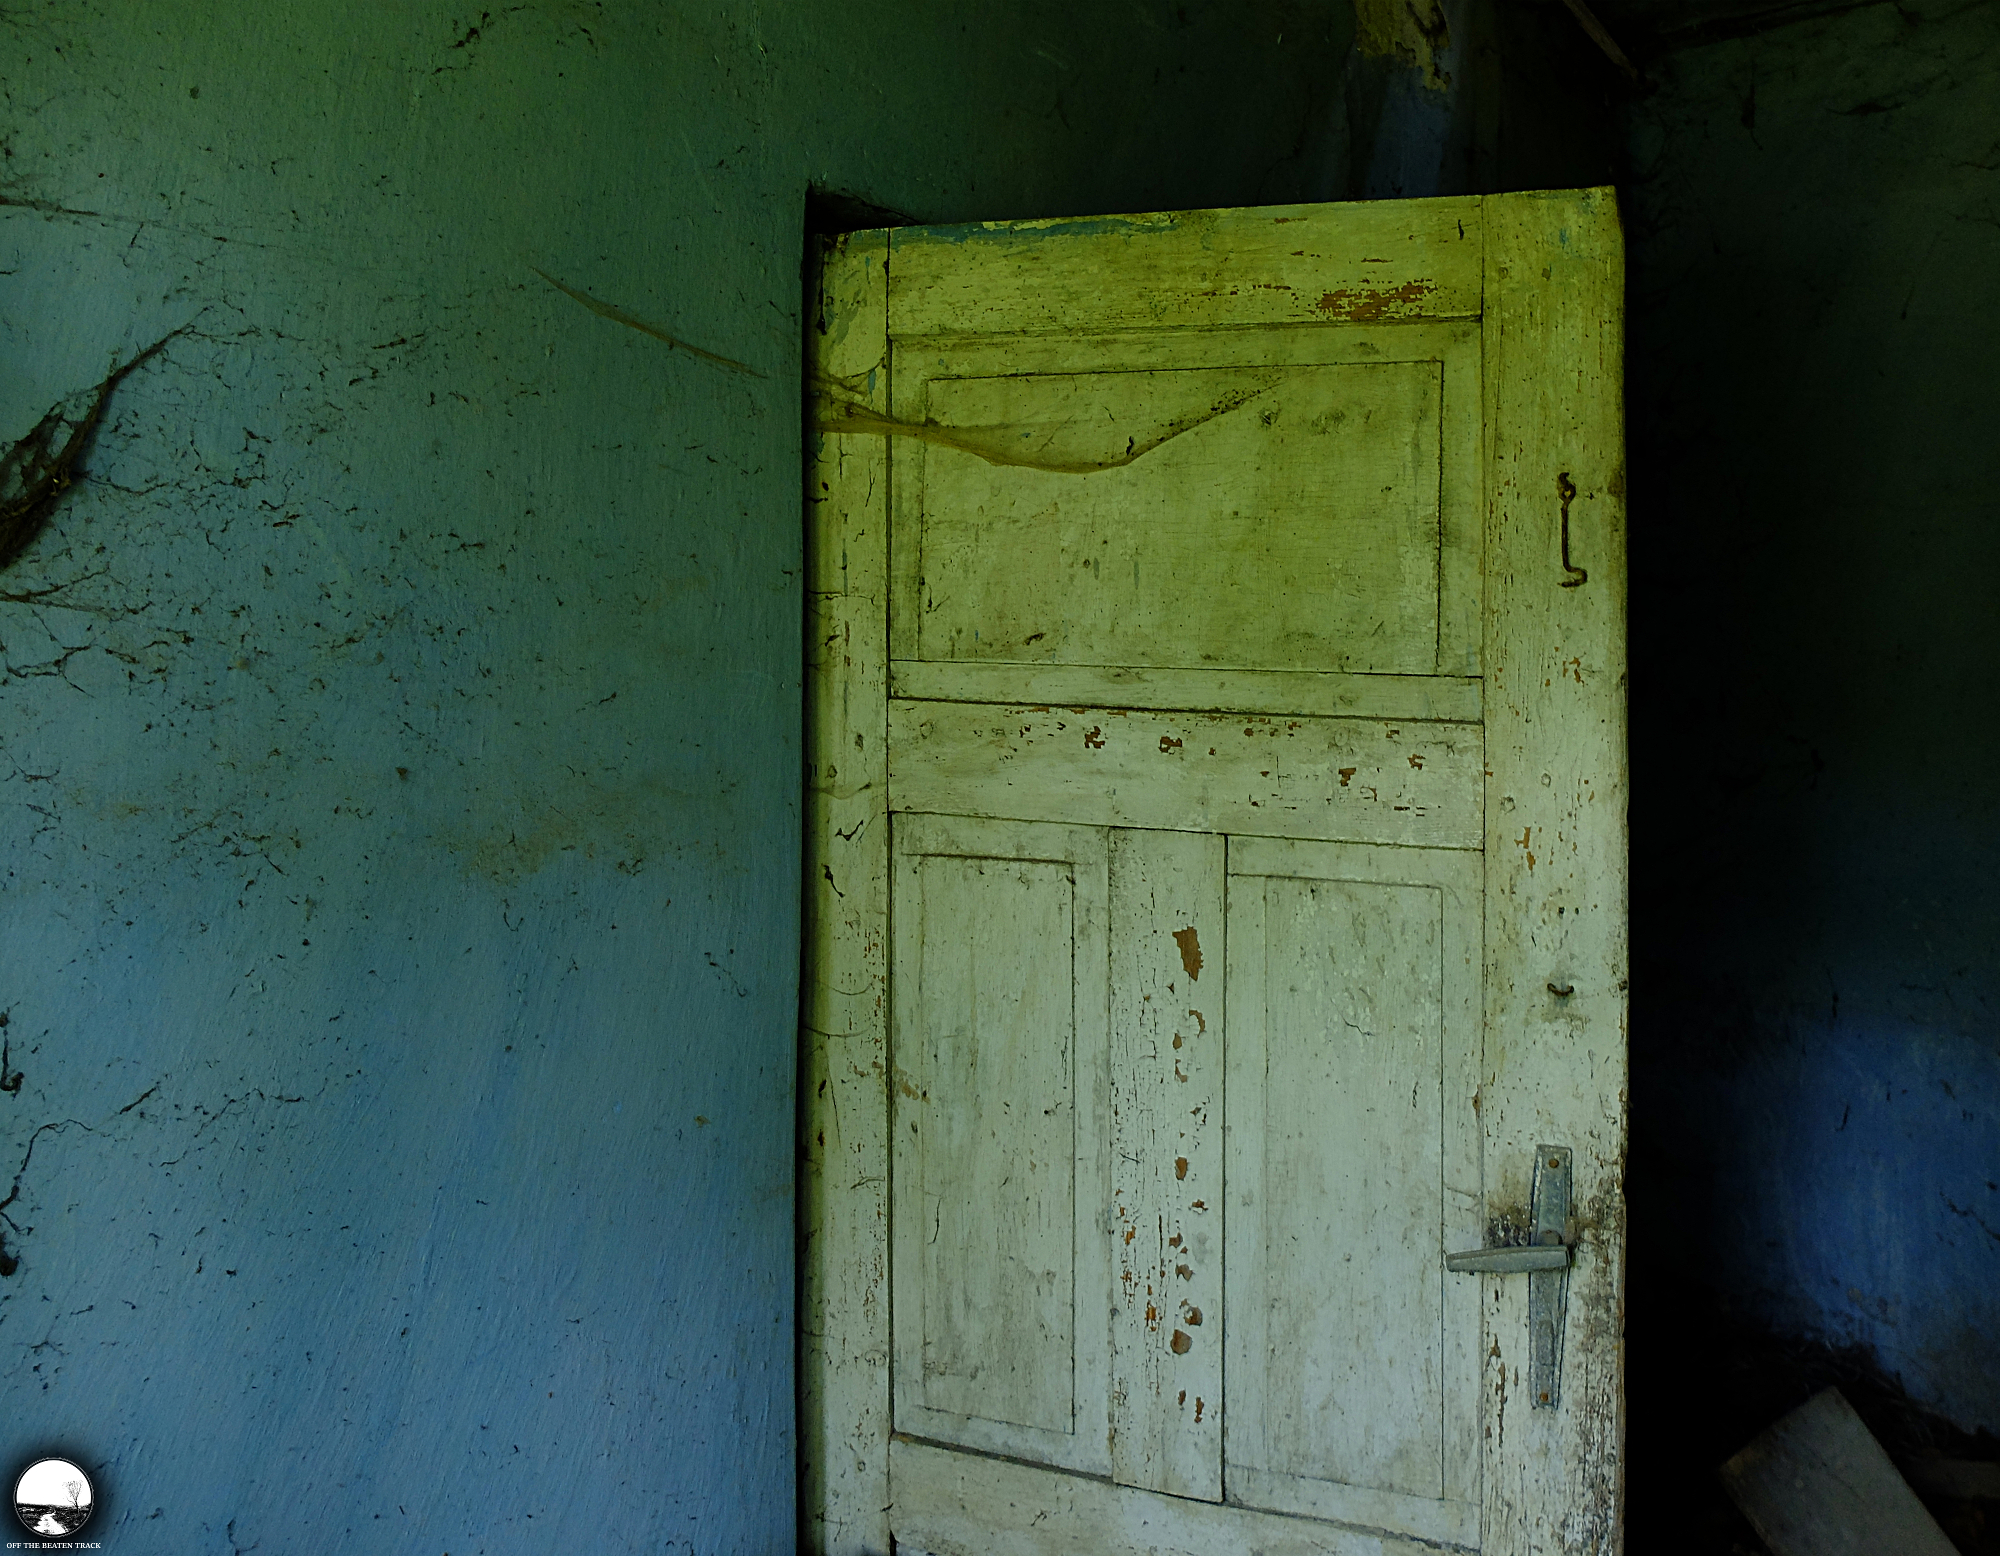 The Abandoned House 'What the Vines Are Hiding' (Poland) - 13.jpg